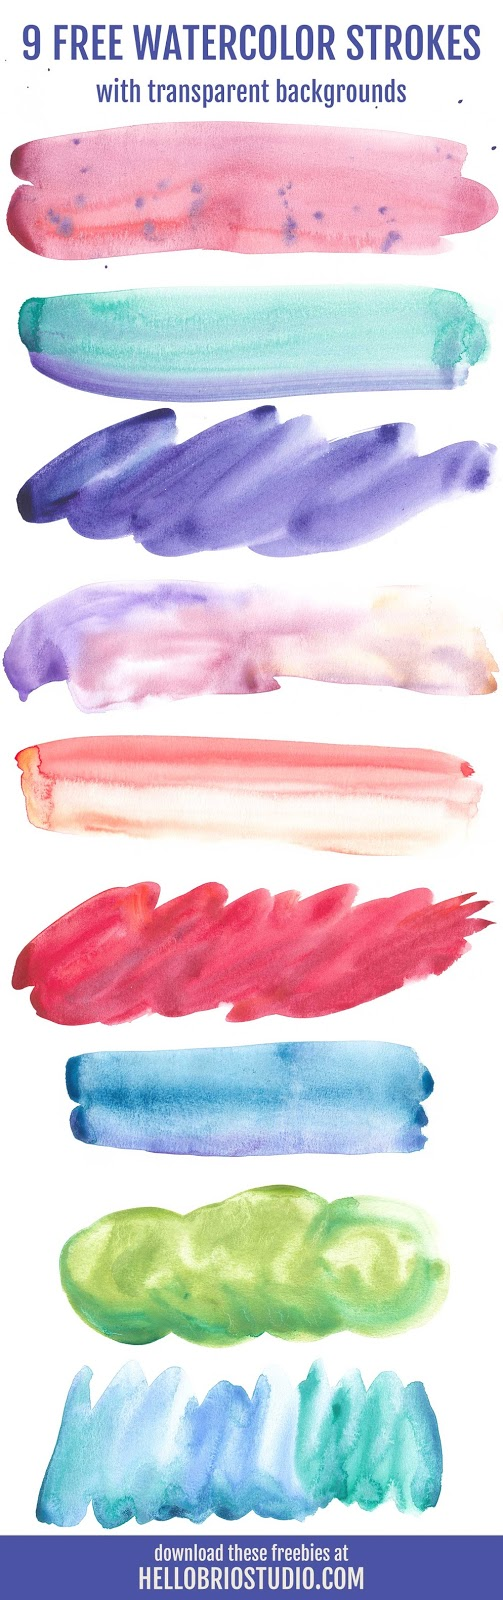 Download these hand-painted watercolor freebies at hellobriostudio.com - high resolution, transparent backgrounds